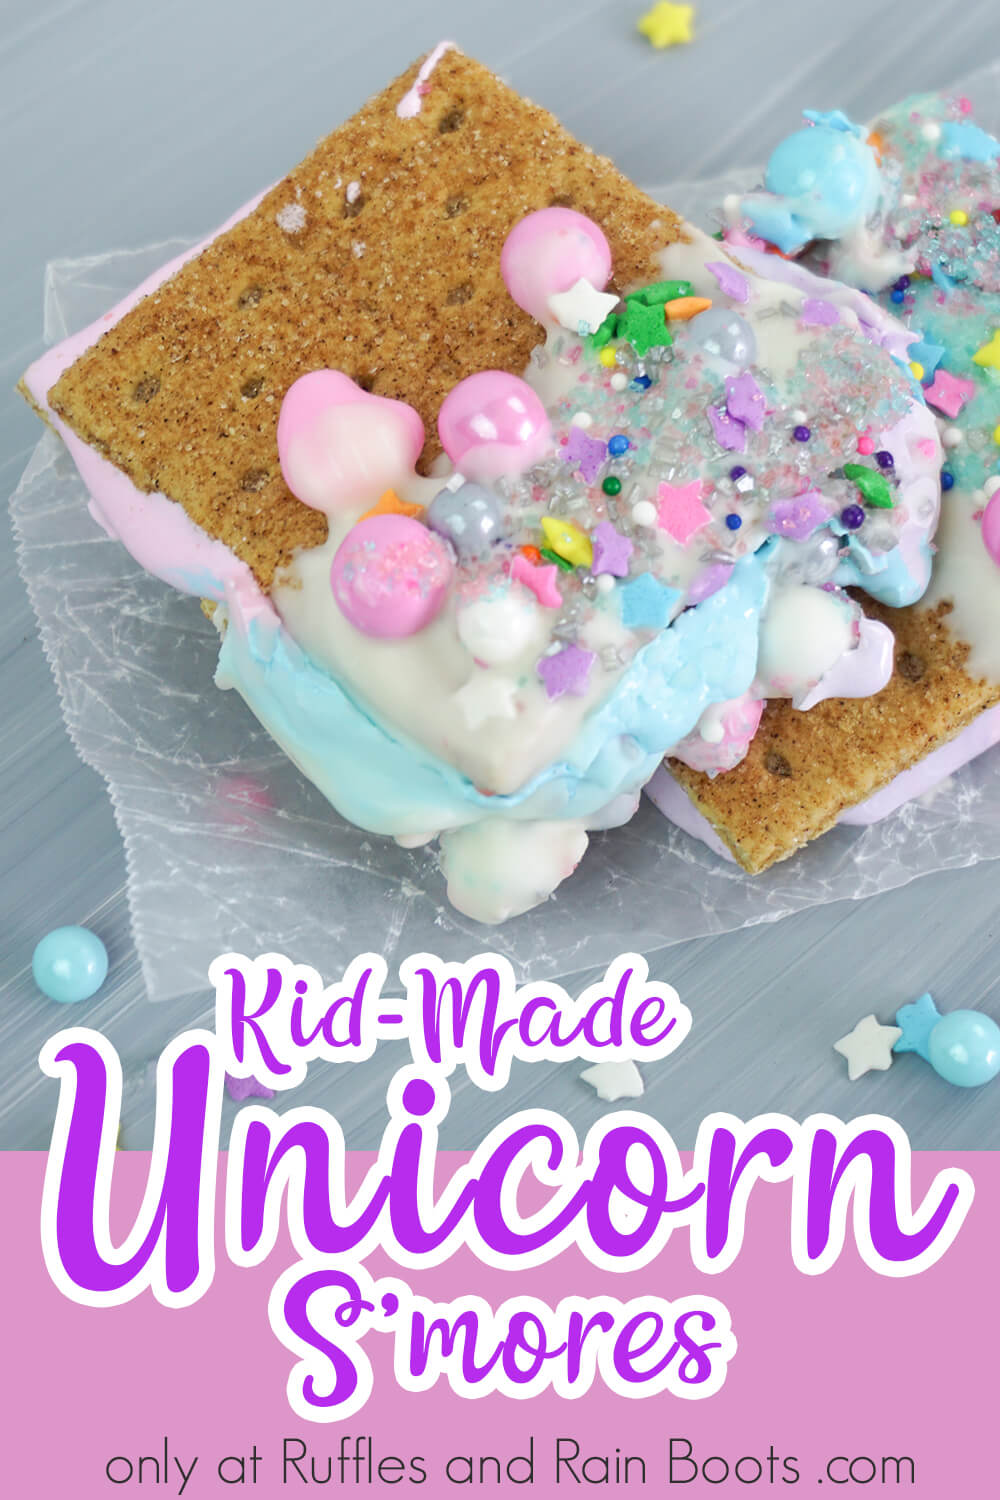 fairy bread alternative unicorn party food with text which reads kid-made unicorn smores for a unicorn party